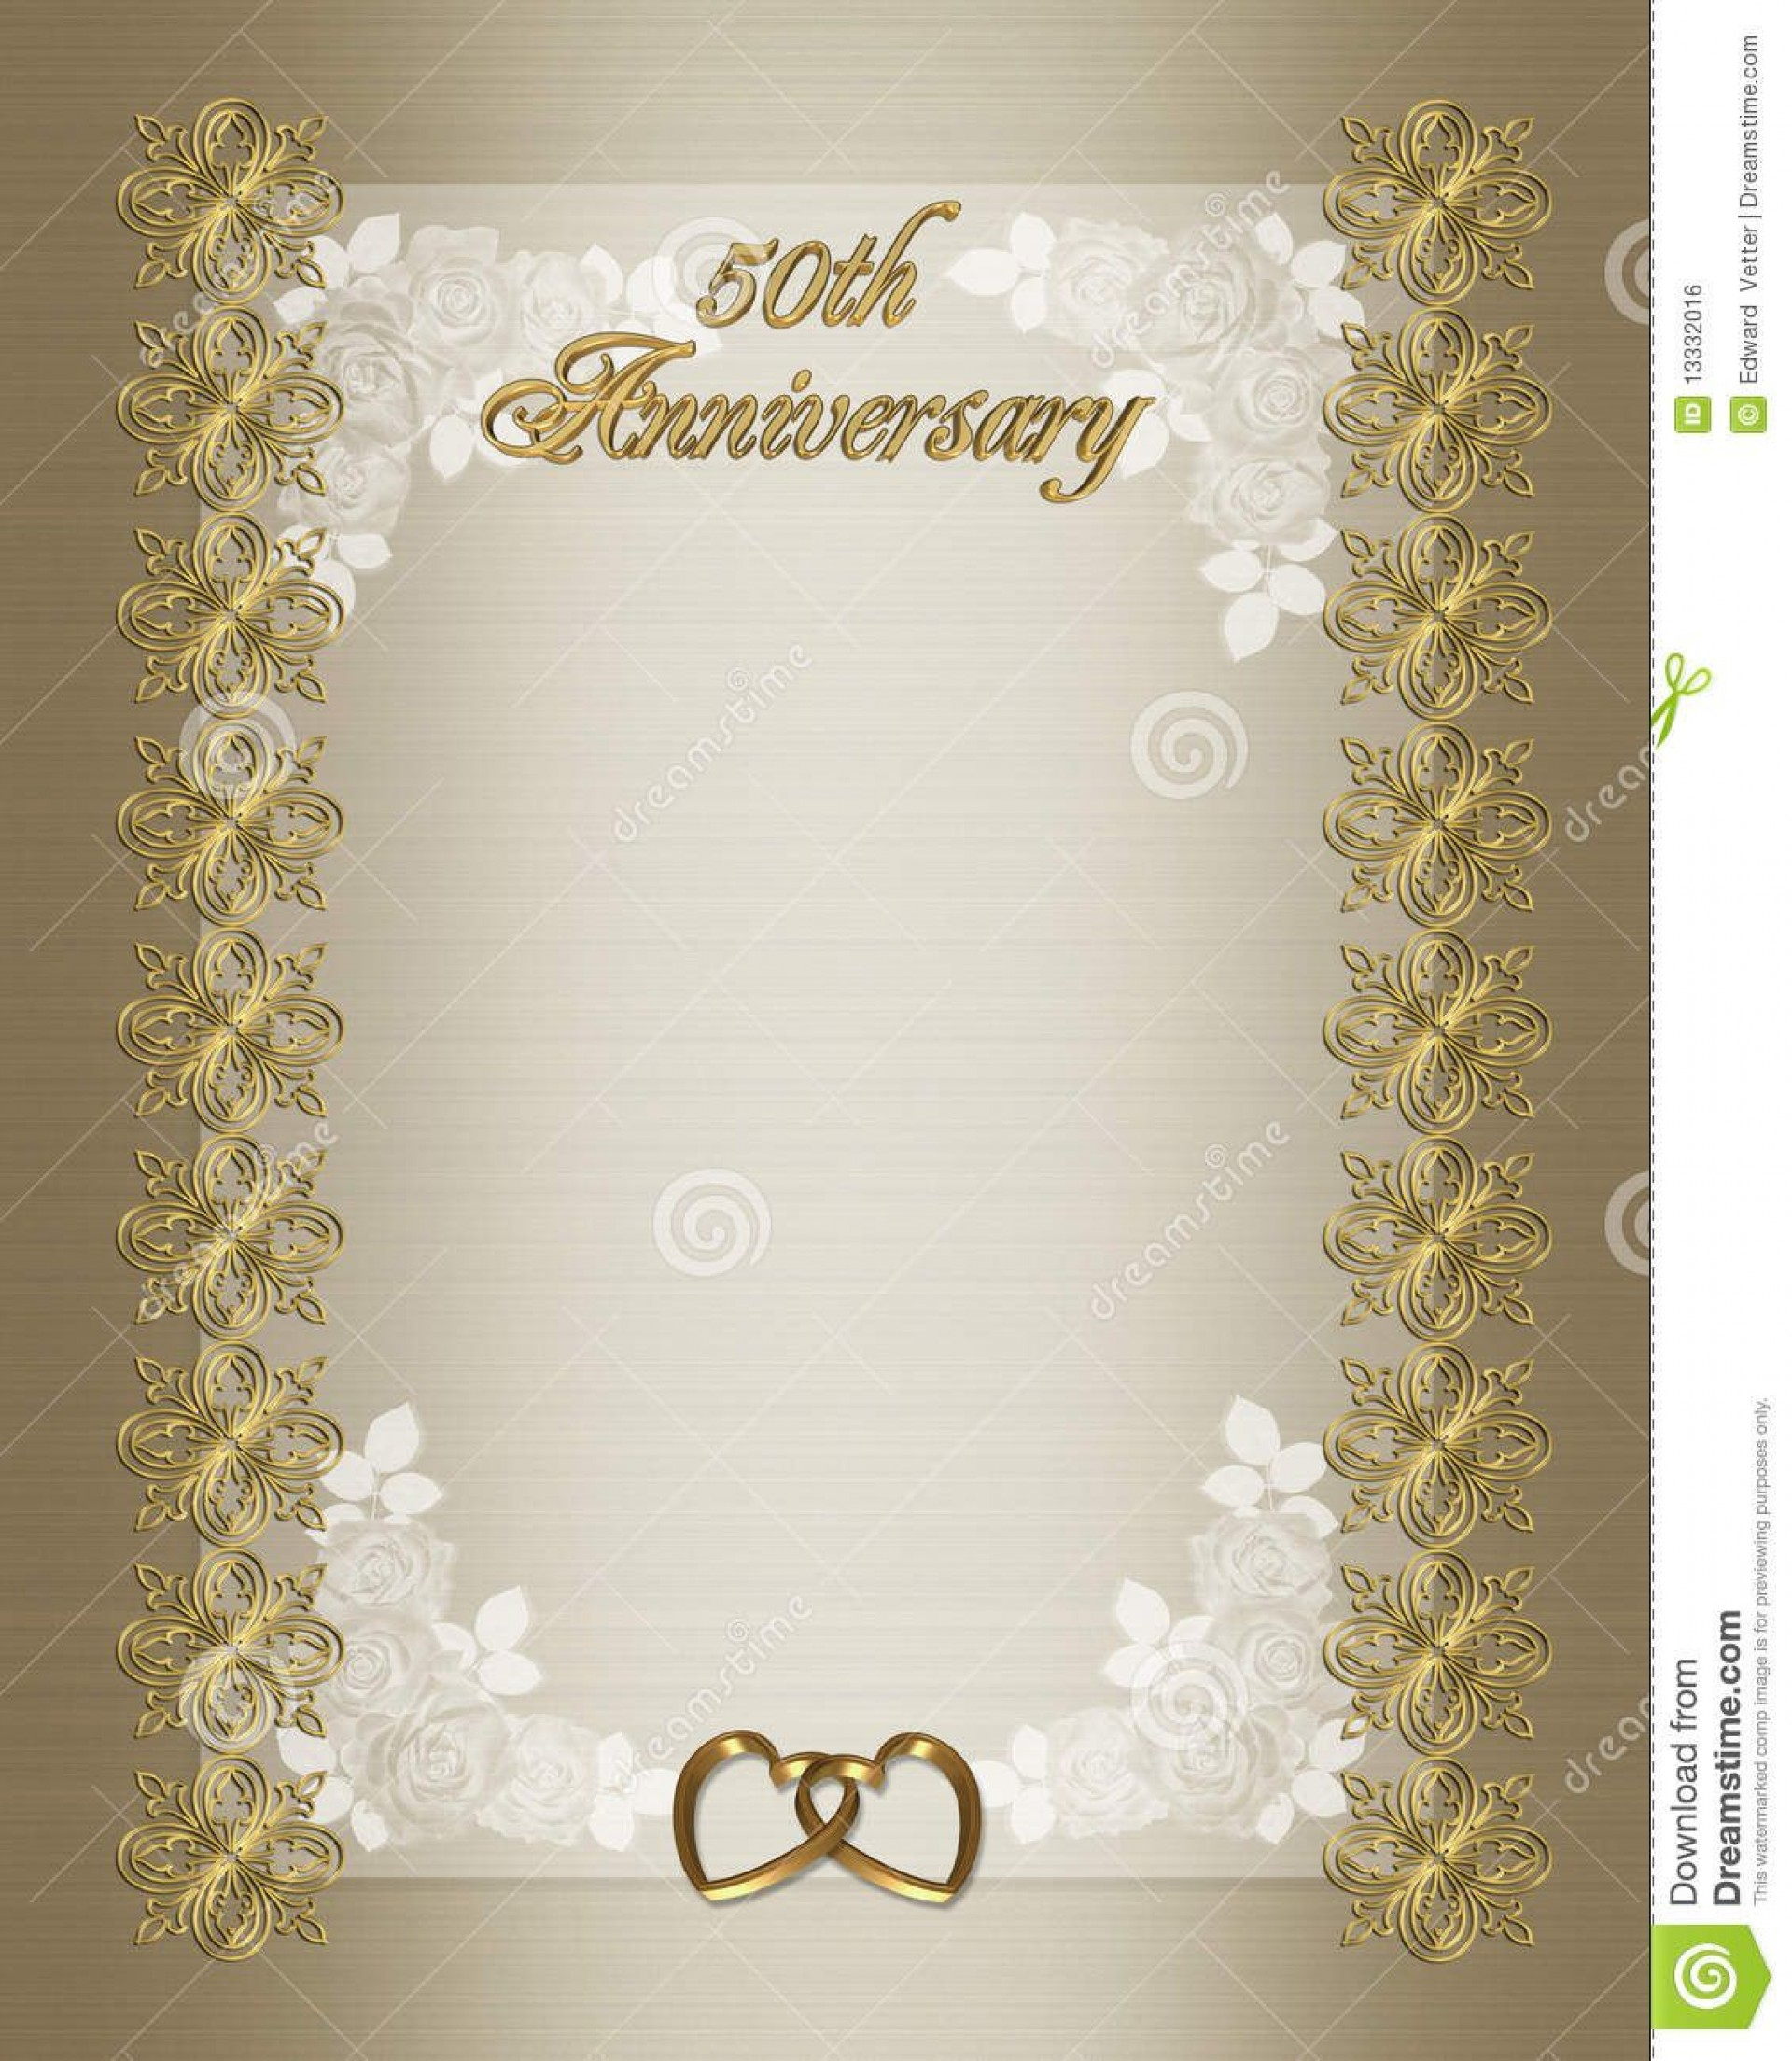 004 Remarkable 50th Wedding Anniversary Party Invitation Template Image  Templates Free1920